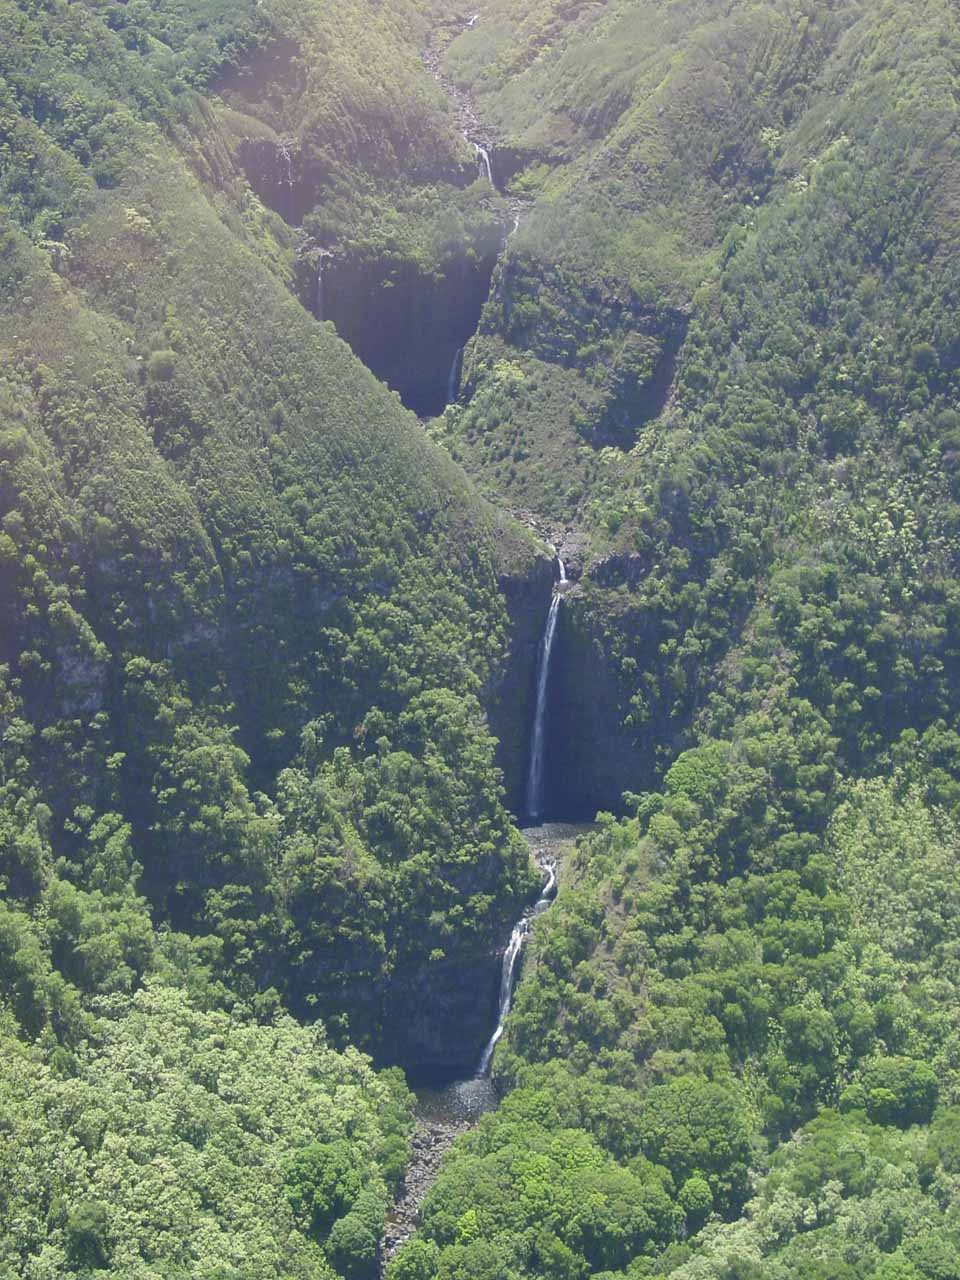 Looking down at Moa'ula Falls in the Halawa Valley of Moloka'i